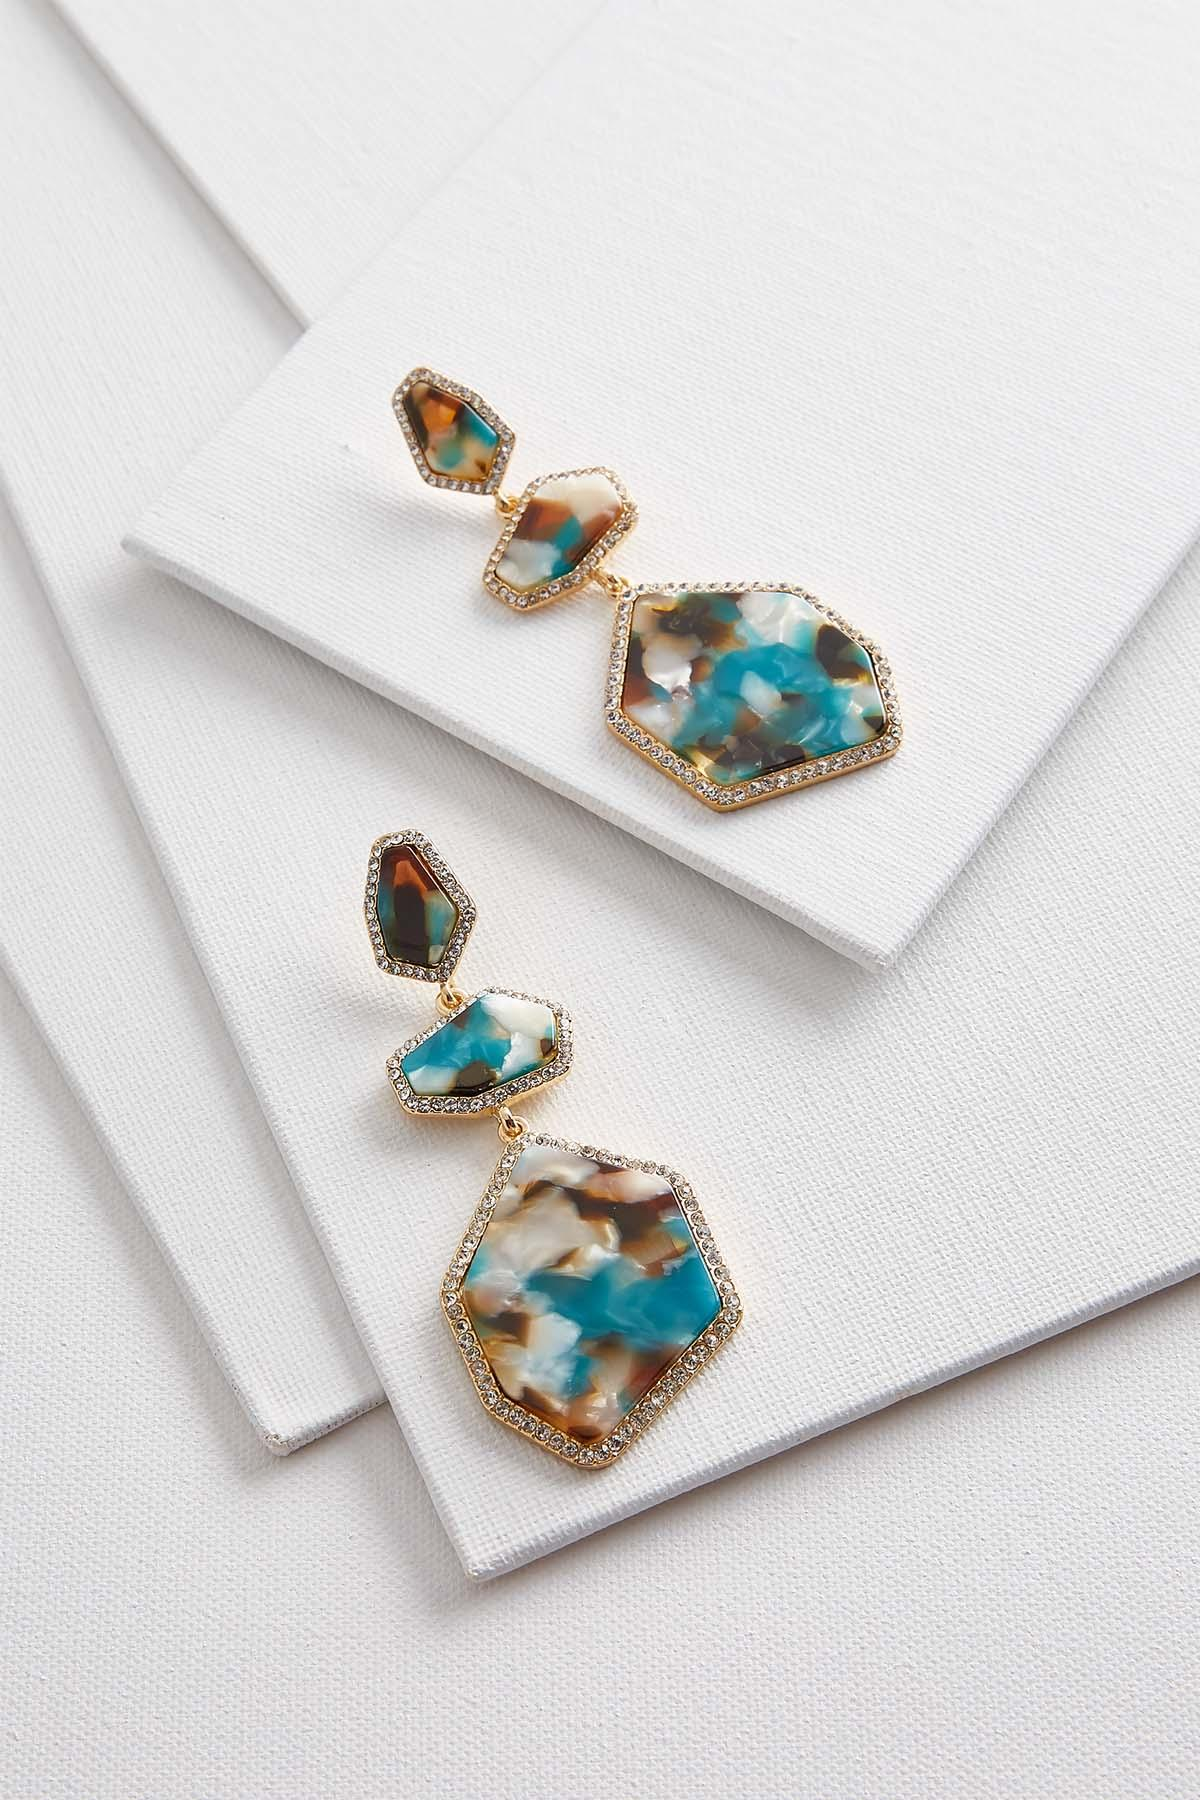 Large Teal Pave Dangle Earrings